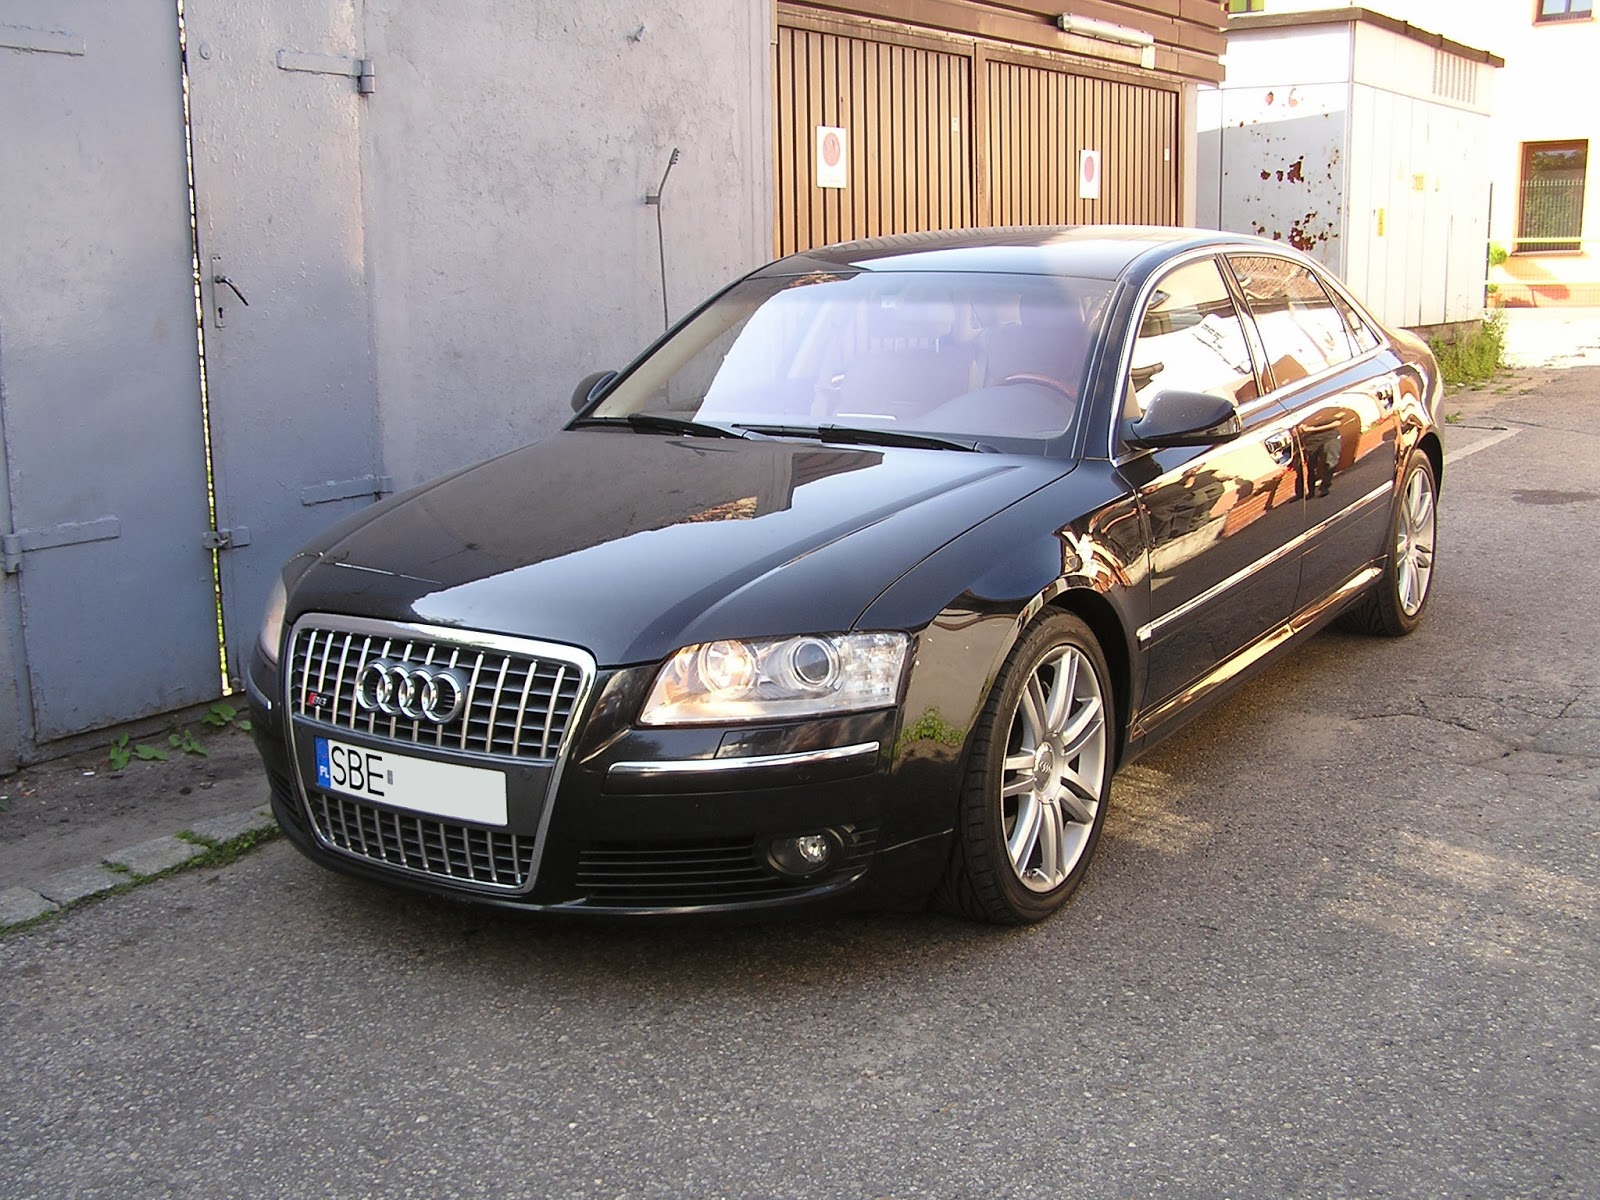 2003 audi a8 long 4e pictures information and specs. Black Bedroom Furniture Sets. Home Design Ideas